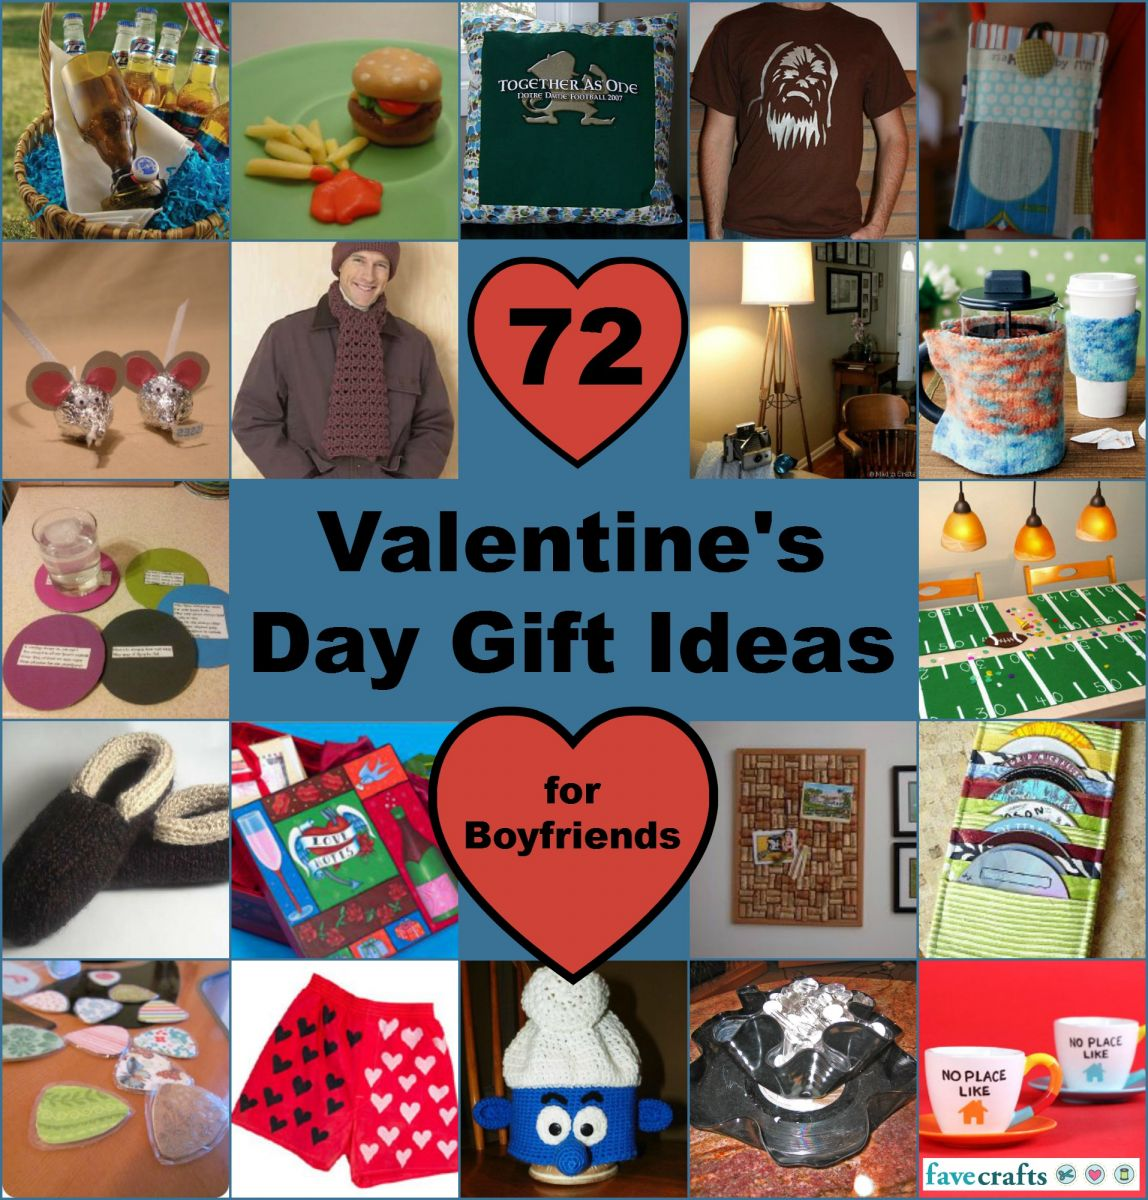 valentine gifts for boyfriend archives - favecrafts, Ideas